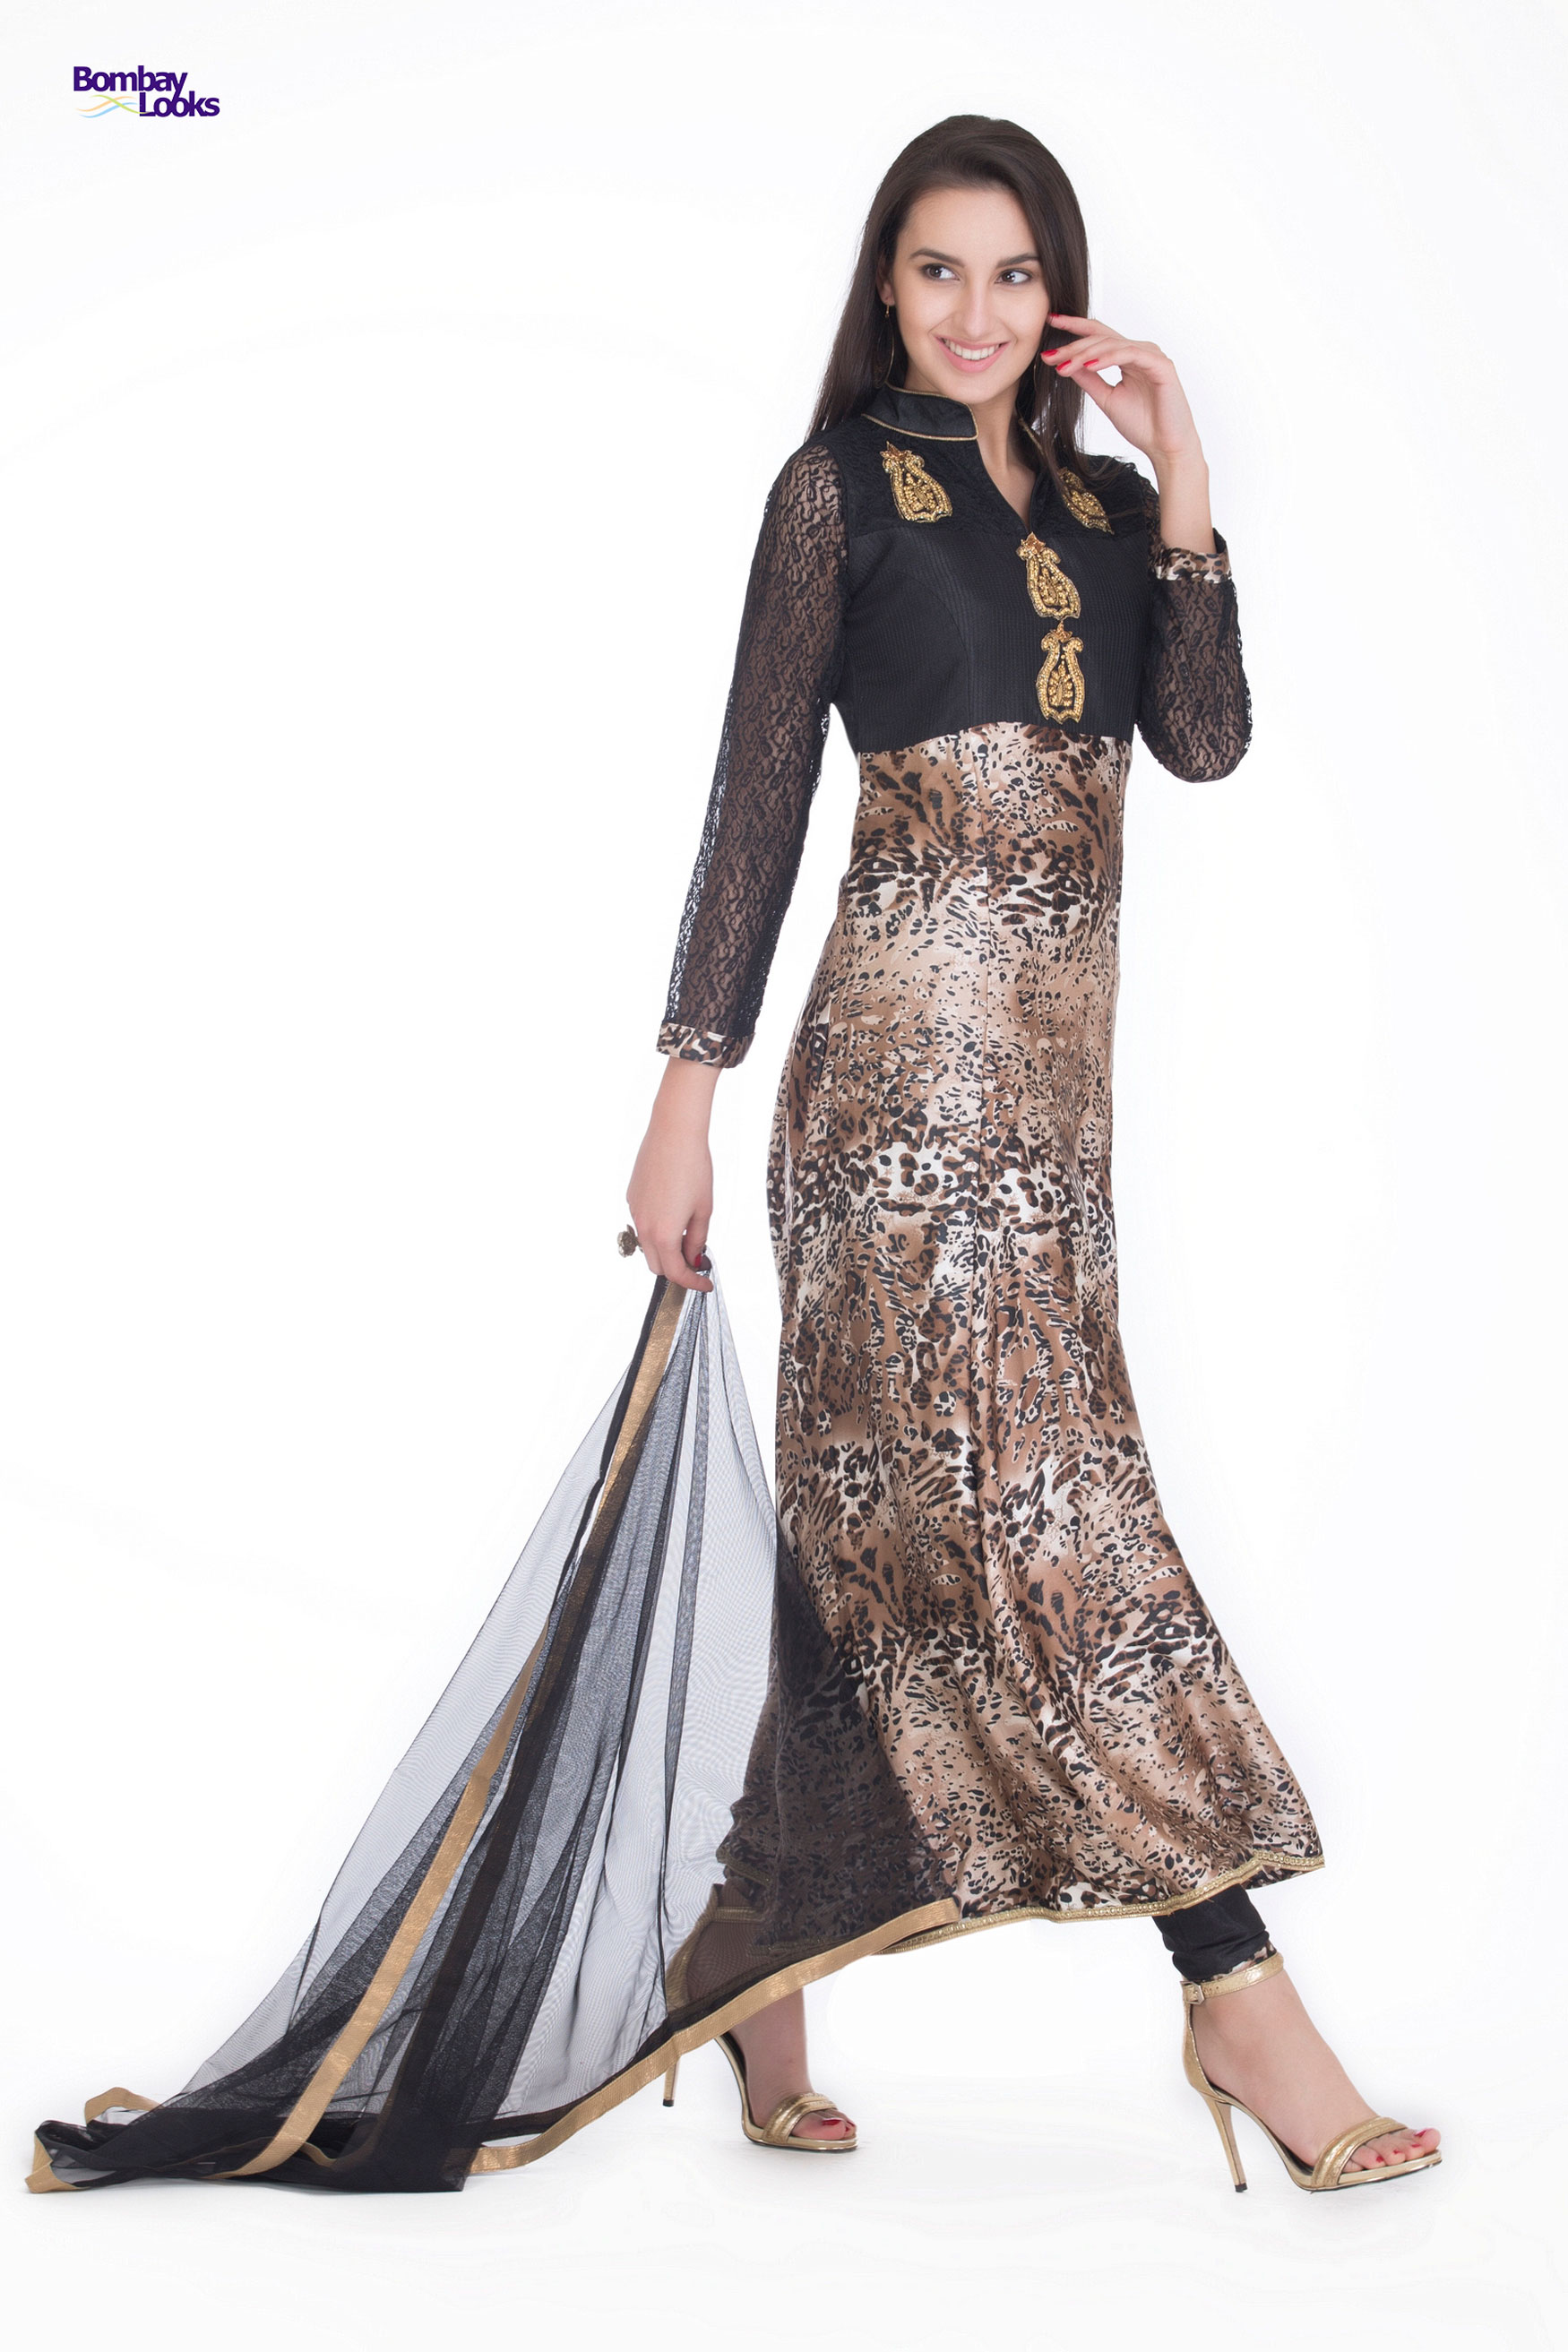 Longline sleek tiger printed suit with lace sleeved and dabka work